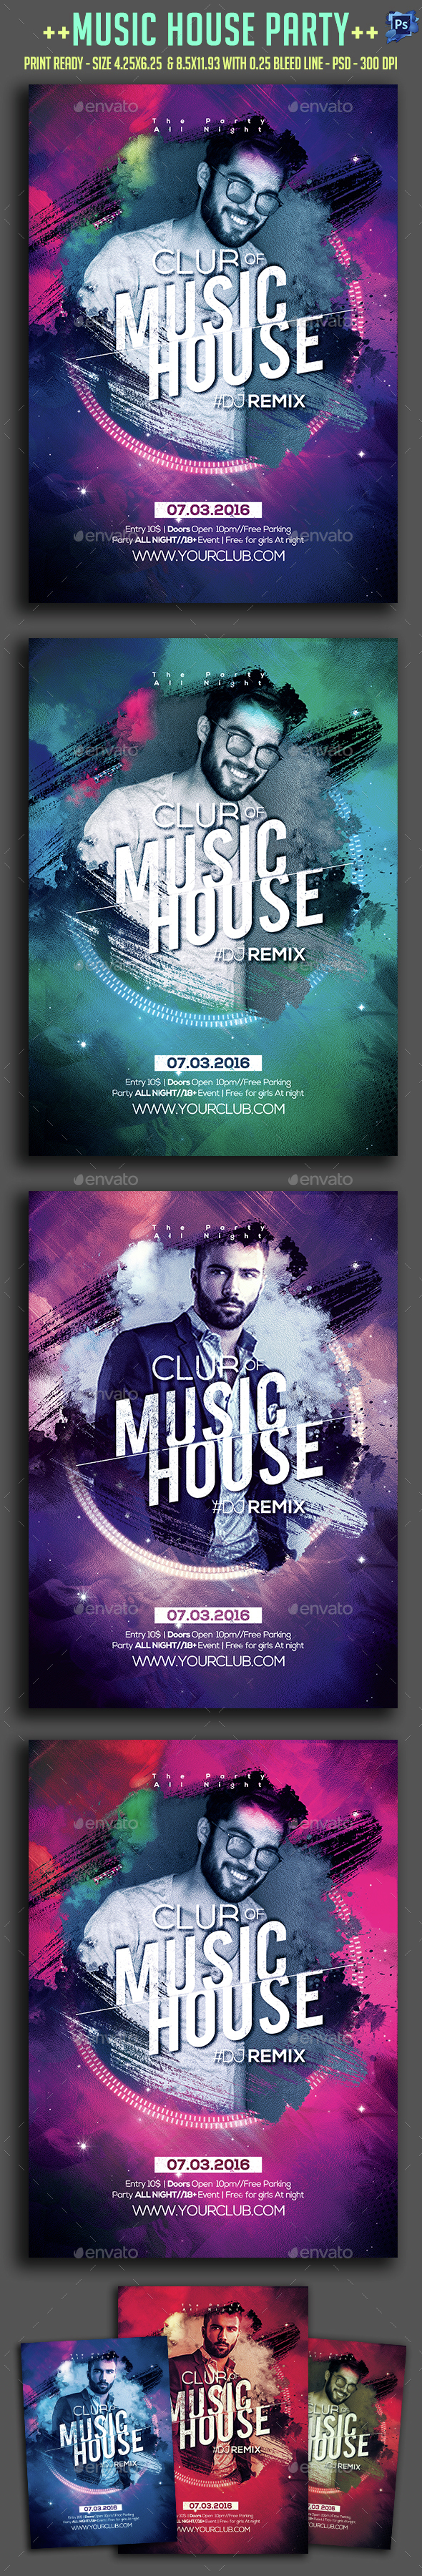 Music House Party Flyer  - Clubs & Parties Events